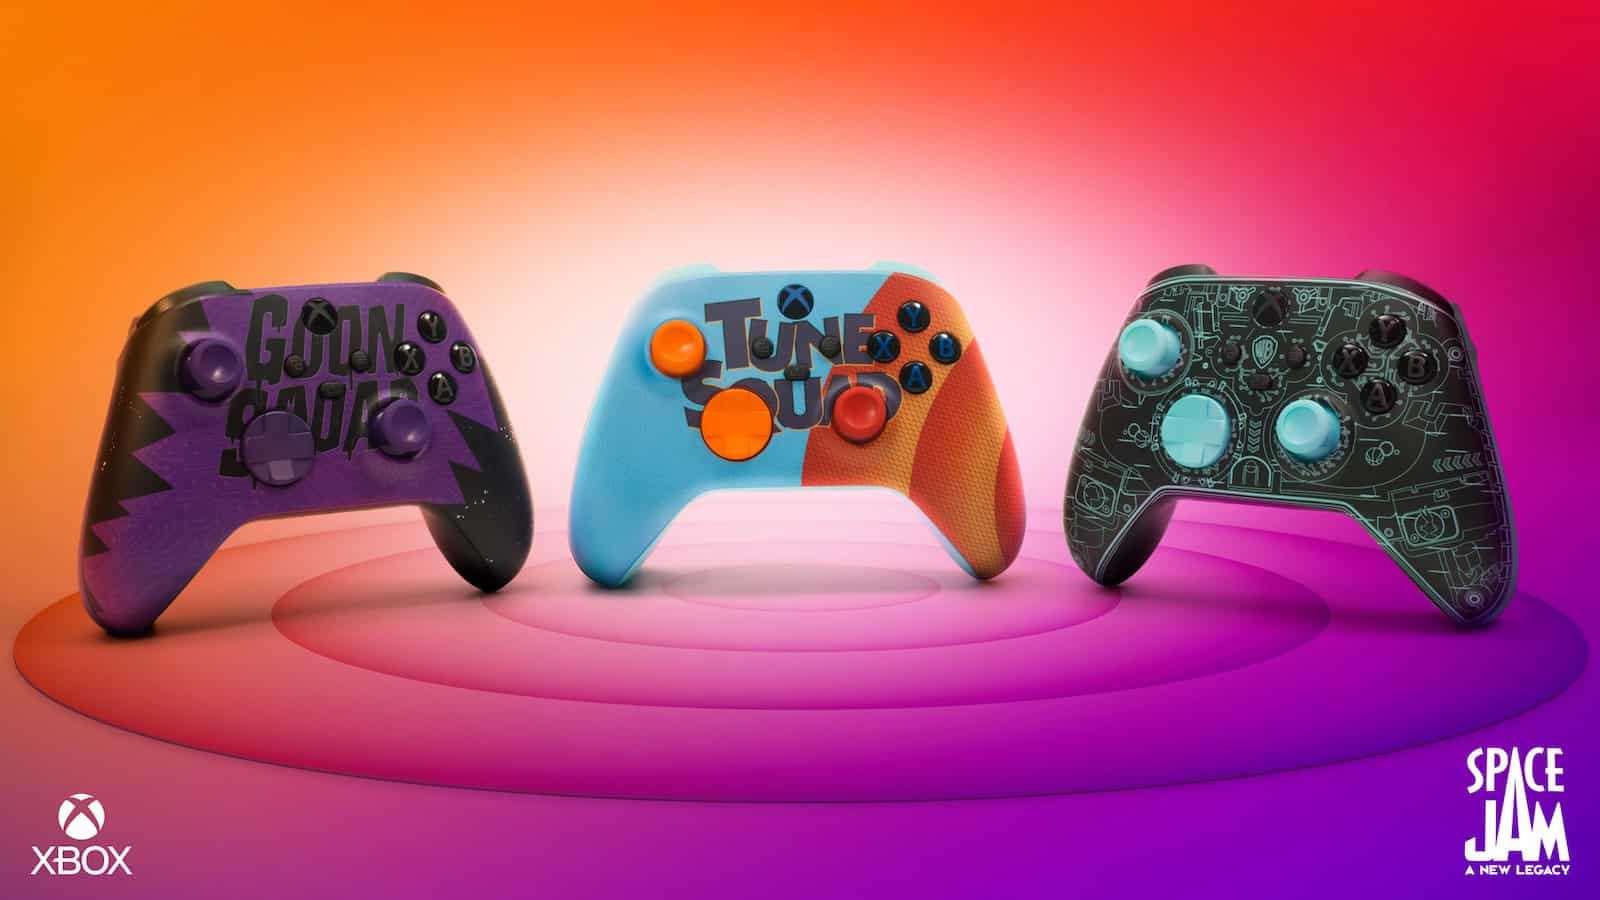 These Custom Xbox Controllers Are Ready To Take On The Goon Squad